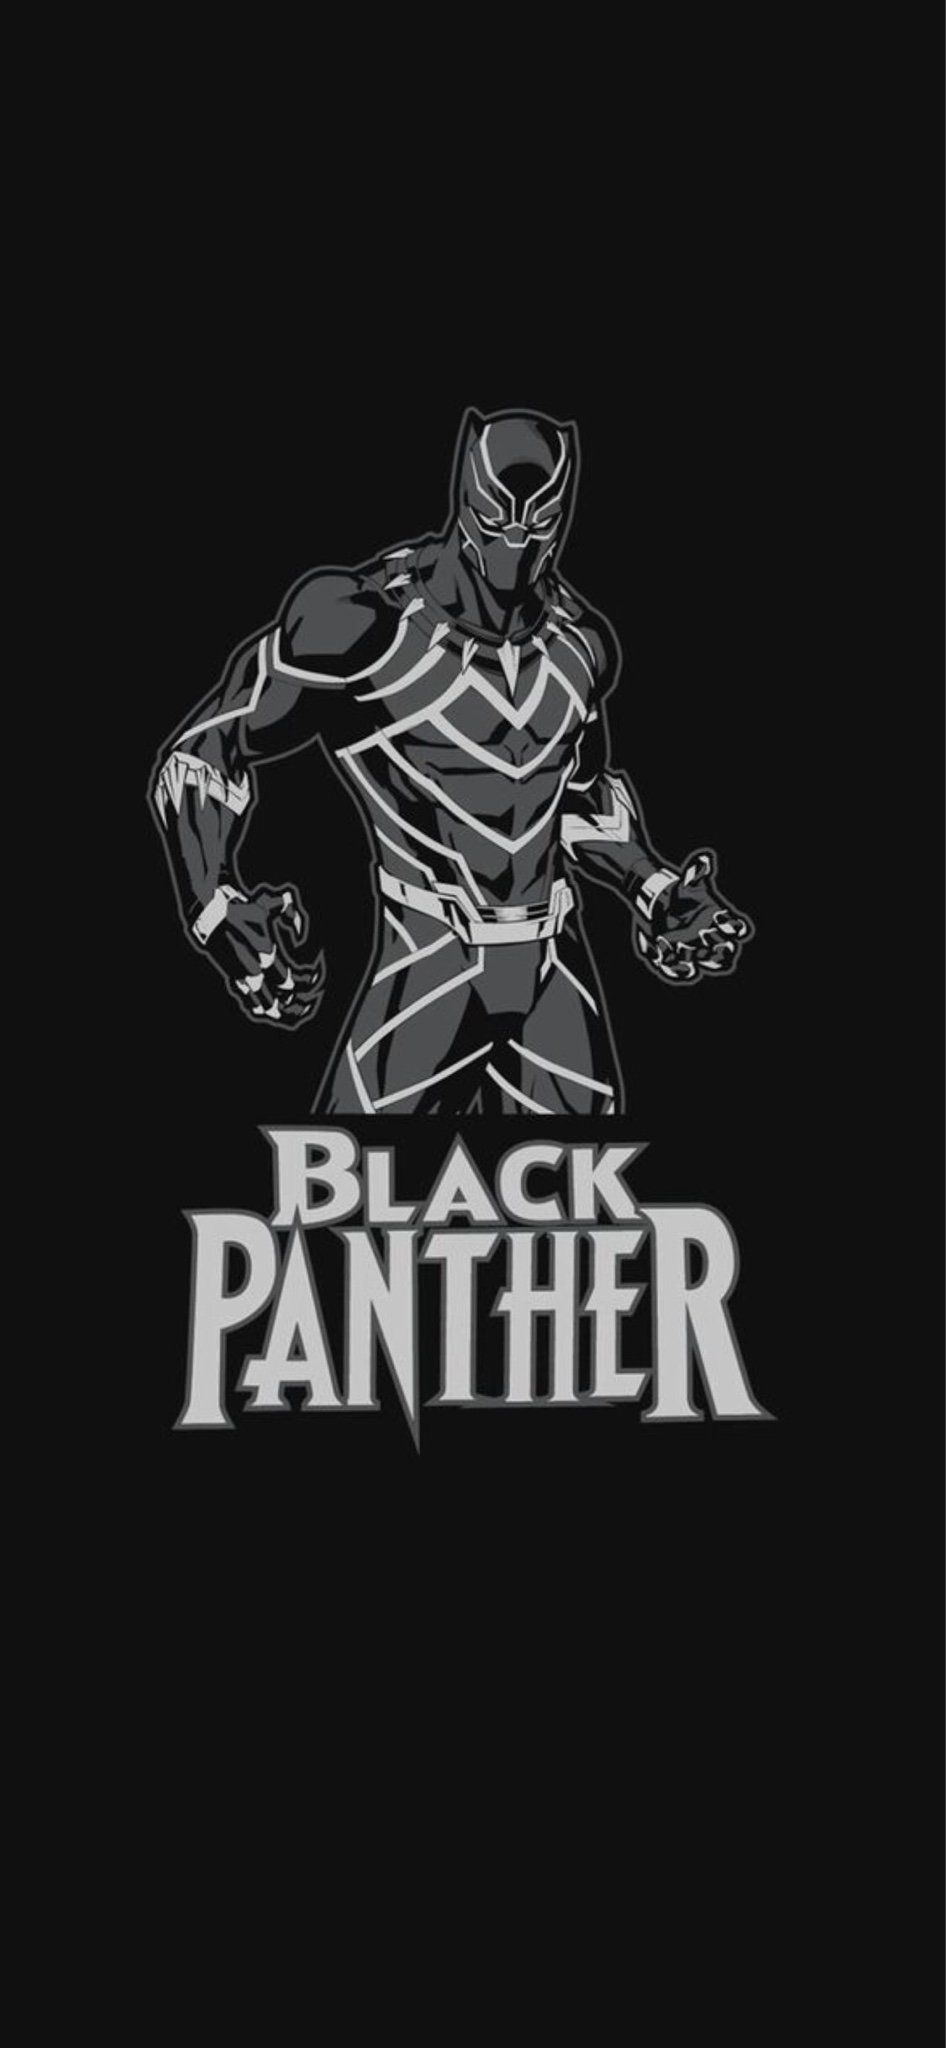 Black Panther Iphone Wallpapers Top Free Black Panther Iphone